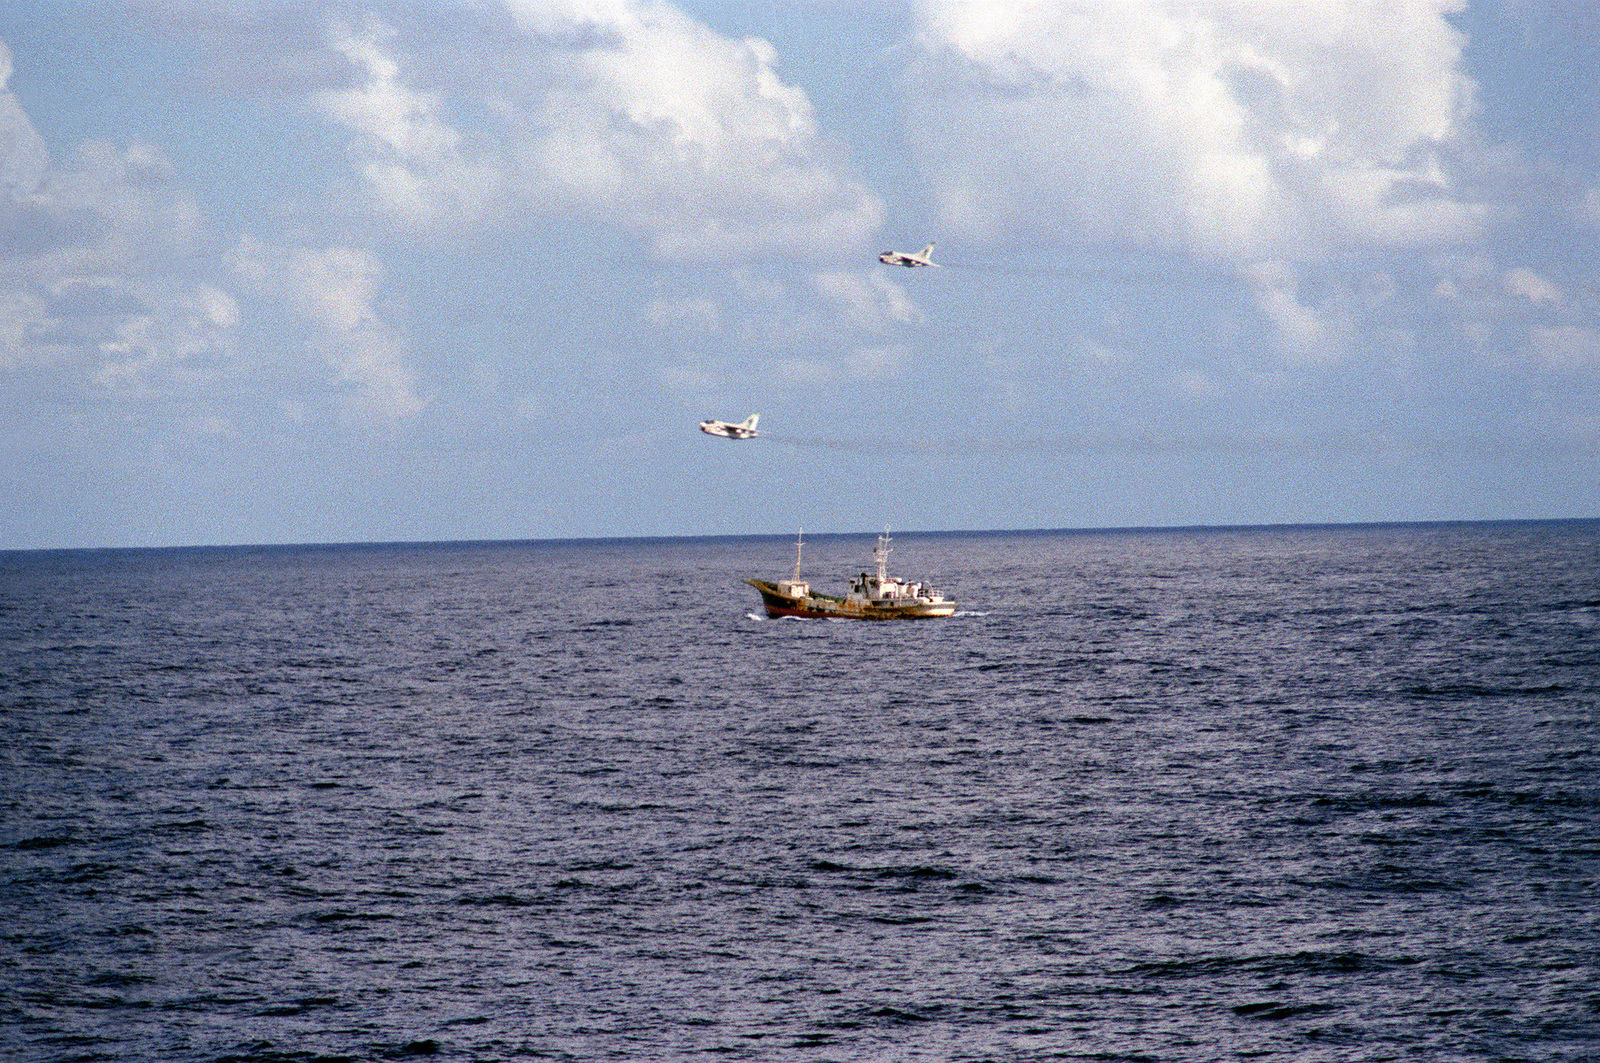 A view of the merchant vessel Mont Boron, suspected of drug smuggling off the Florida coast, as two Attack Squadron 205 (VA-205) A-7 Corsair II aircraft fly overhead as part of a drug interdiction operation. The photo was taken from the guided missile frigate USS CLIFTON SPRAGUE (FFG-16), which is providing a show of force as an example of the Navy's support to the vice president's South Florida Task Force